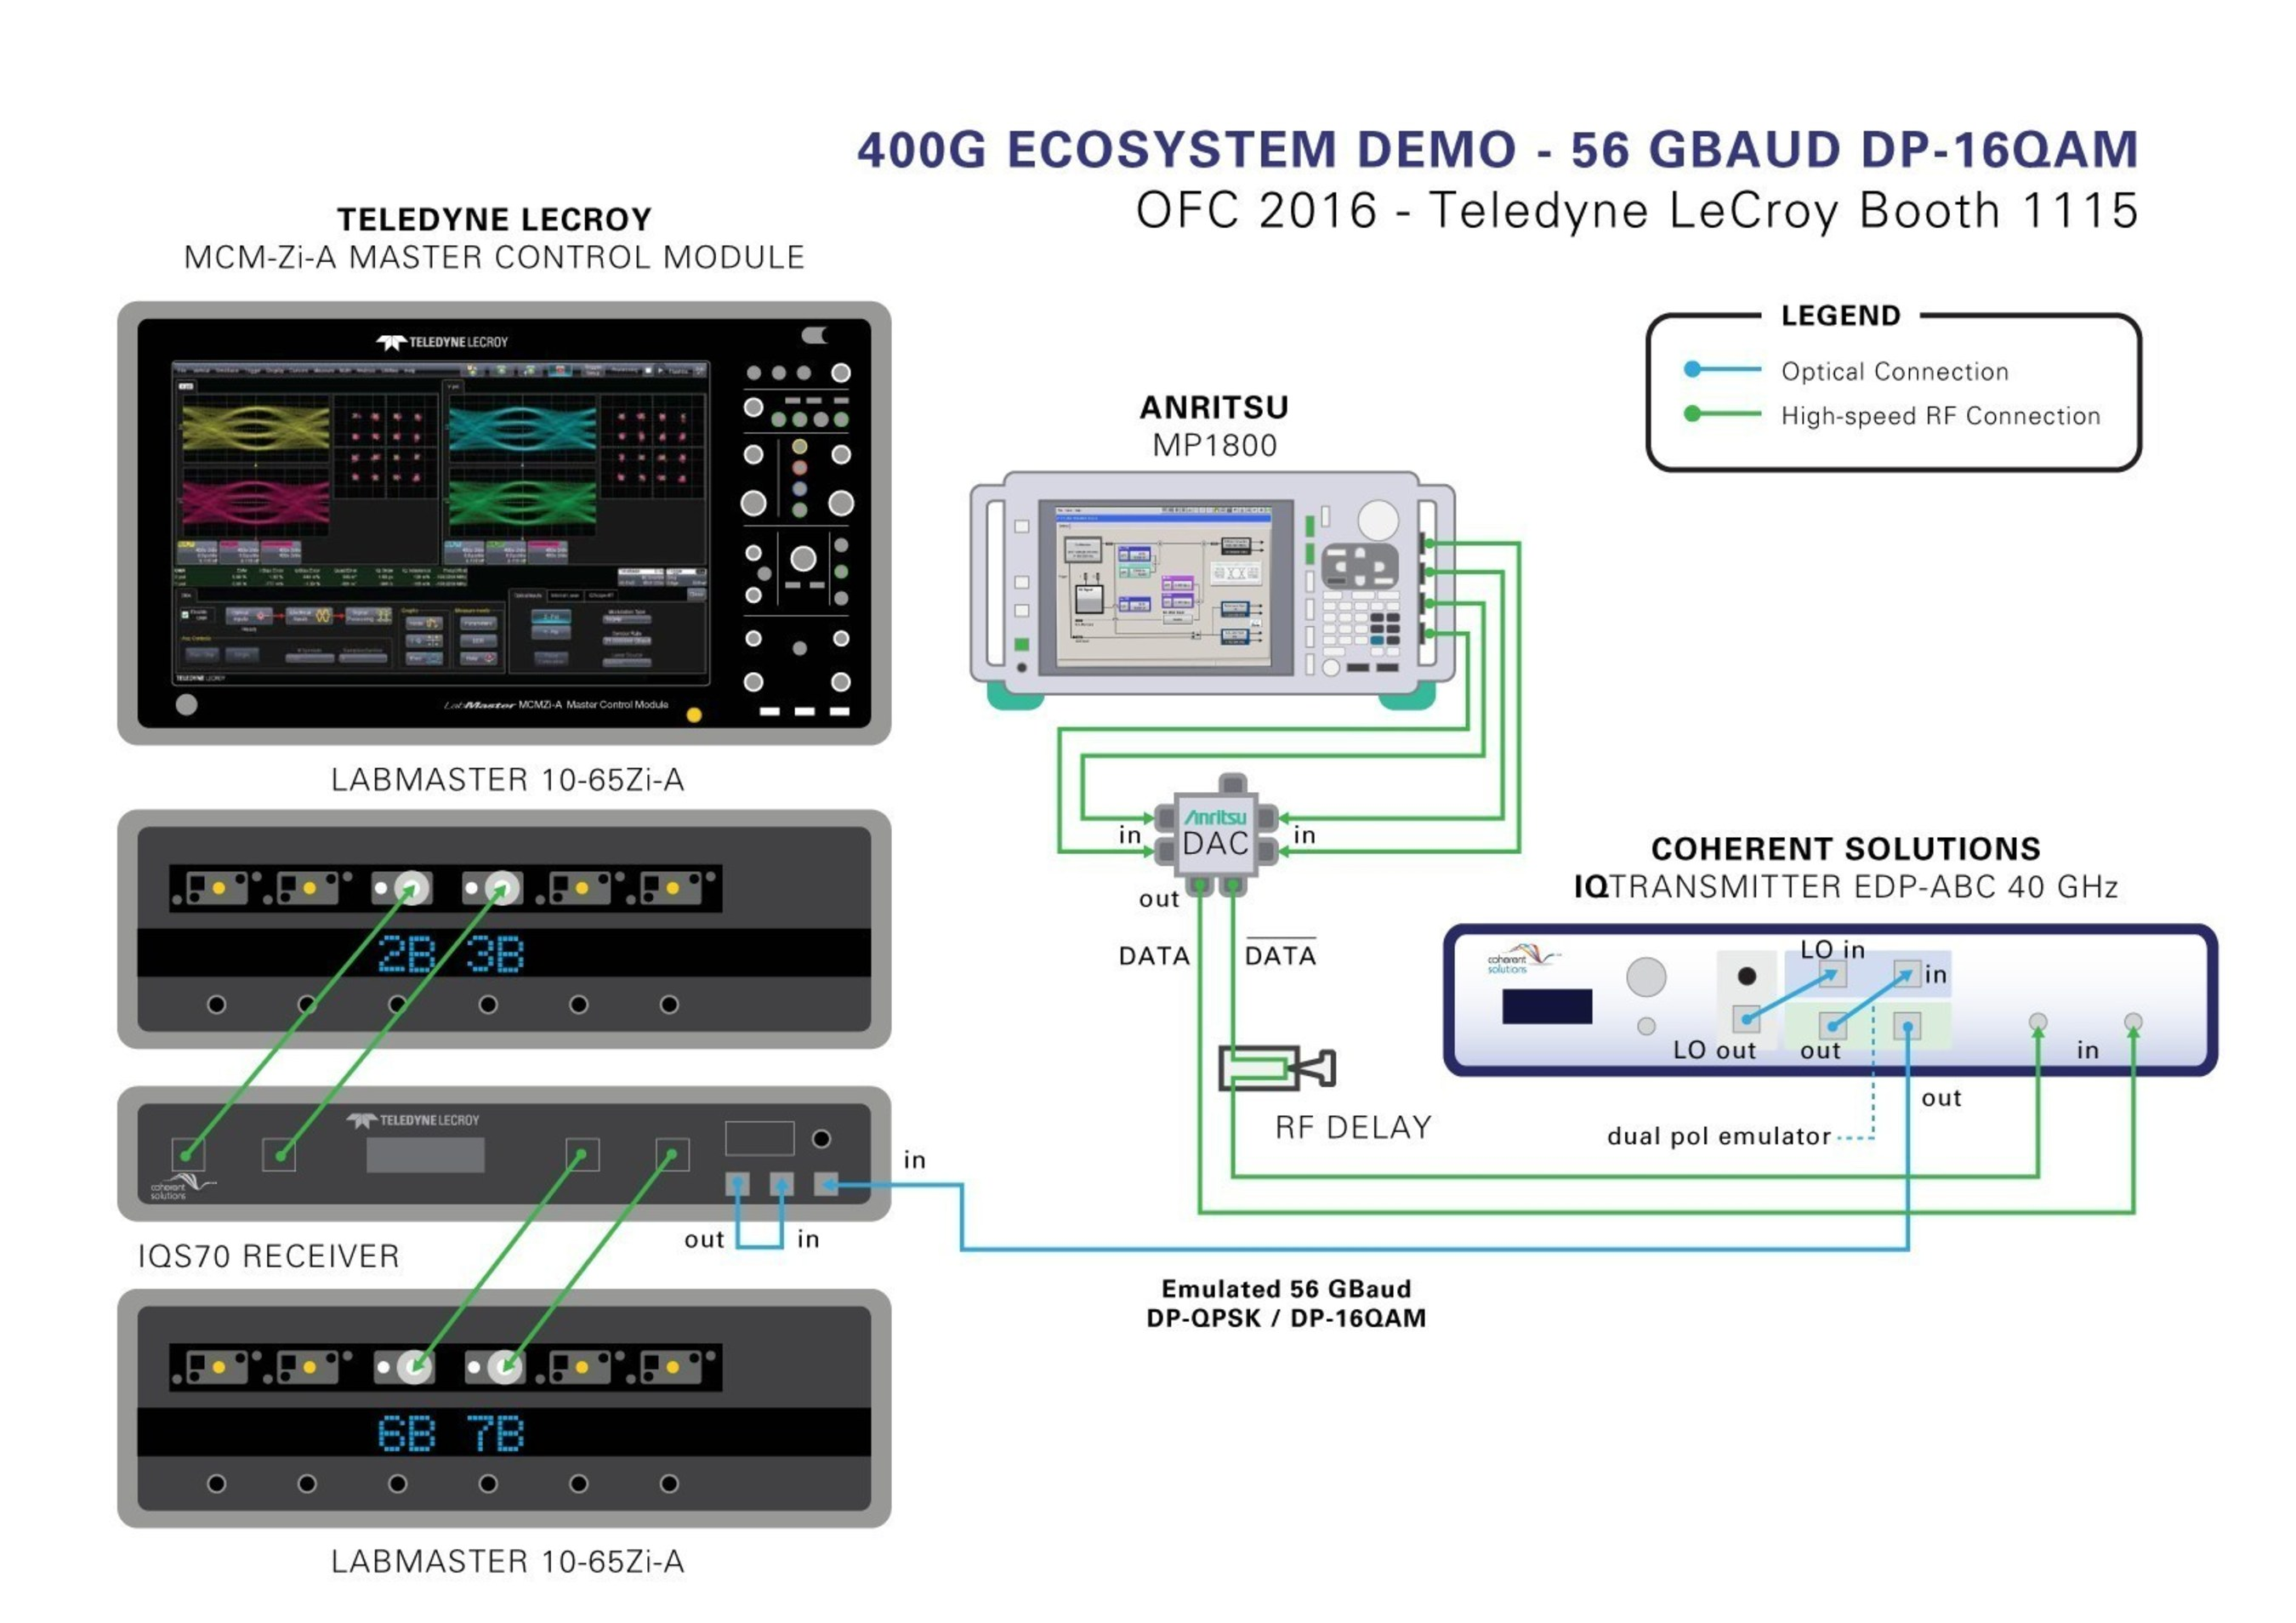 Teledyne LeCroy, Coherent Solutions, Anritsu and Oclaro showcase latest 400G test platform at OFC 2016